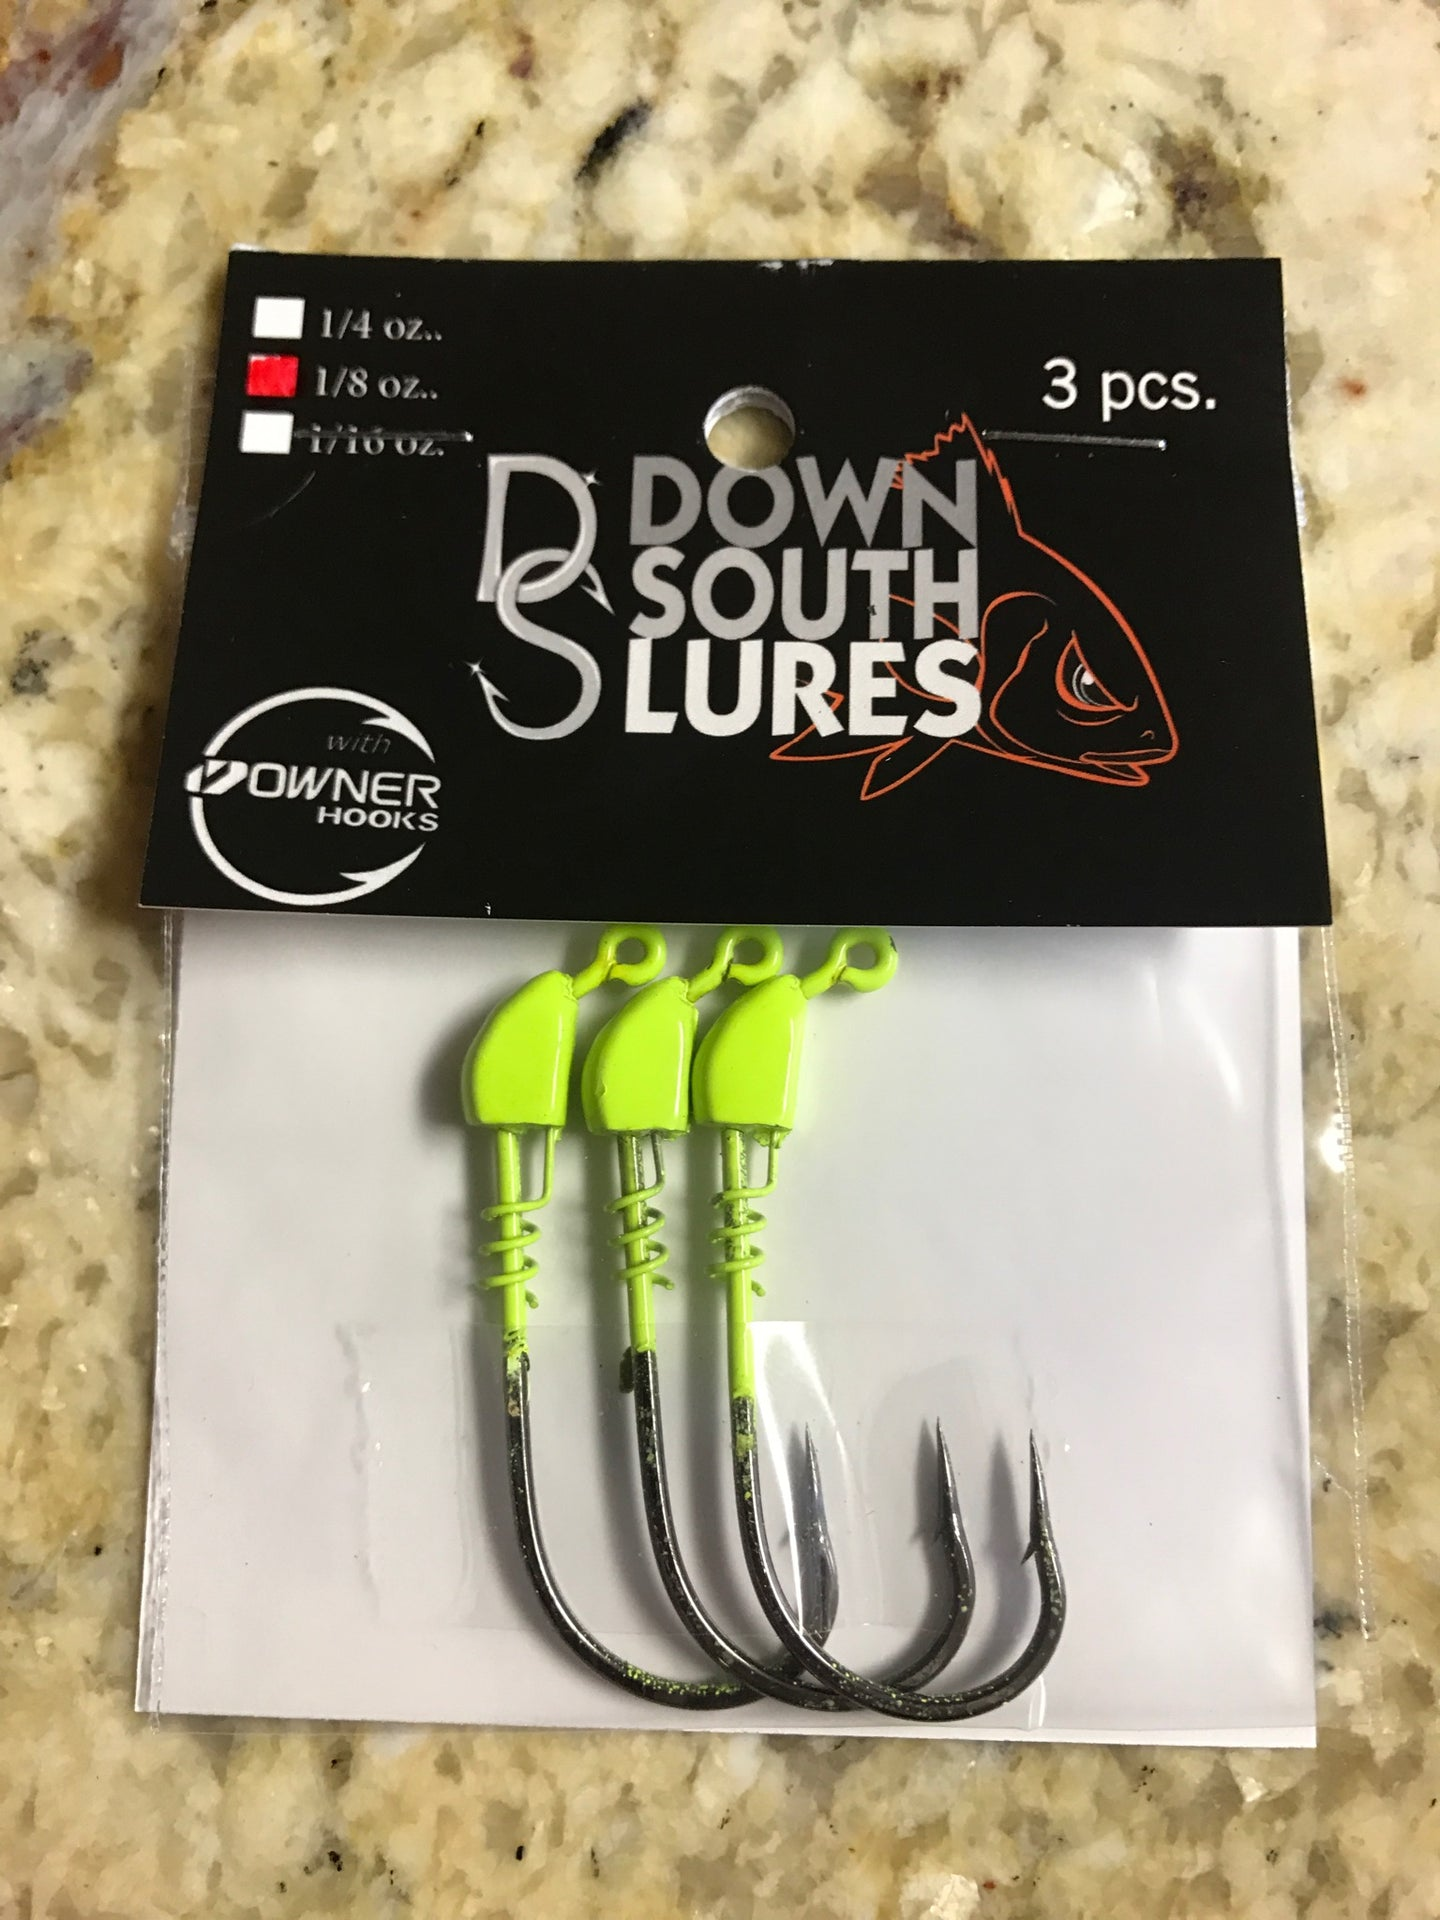 Down South Lures Jigheads 1/8 oz. 4/0 Chartreuse